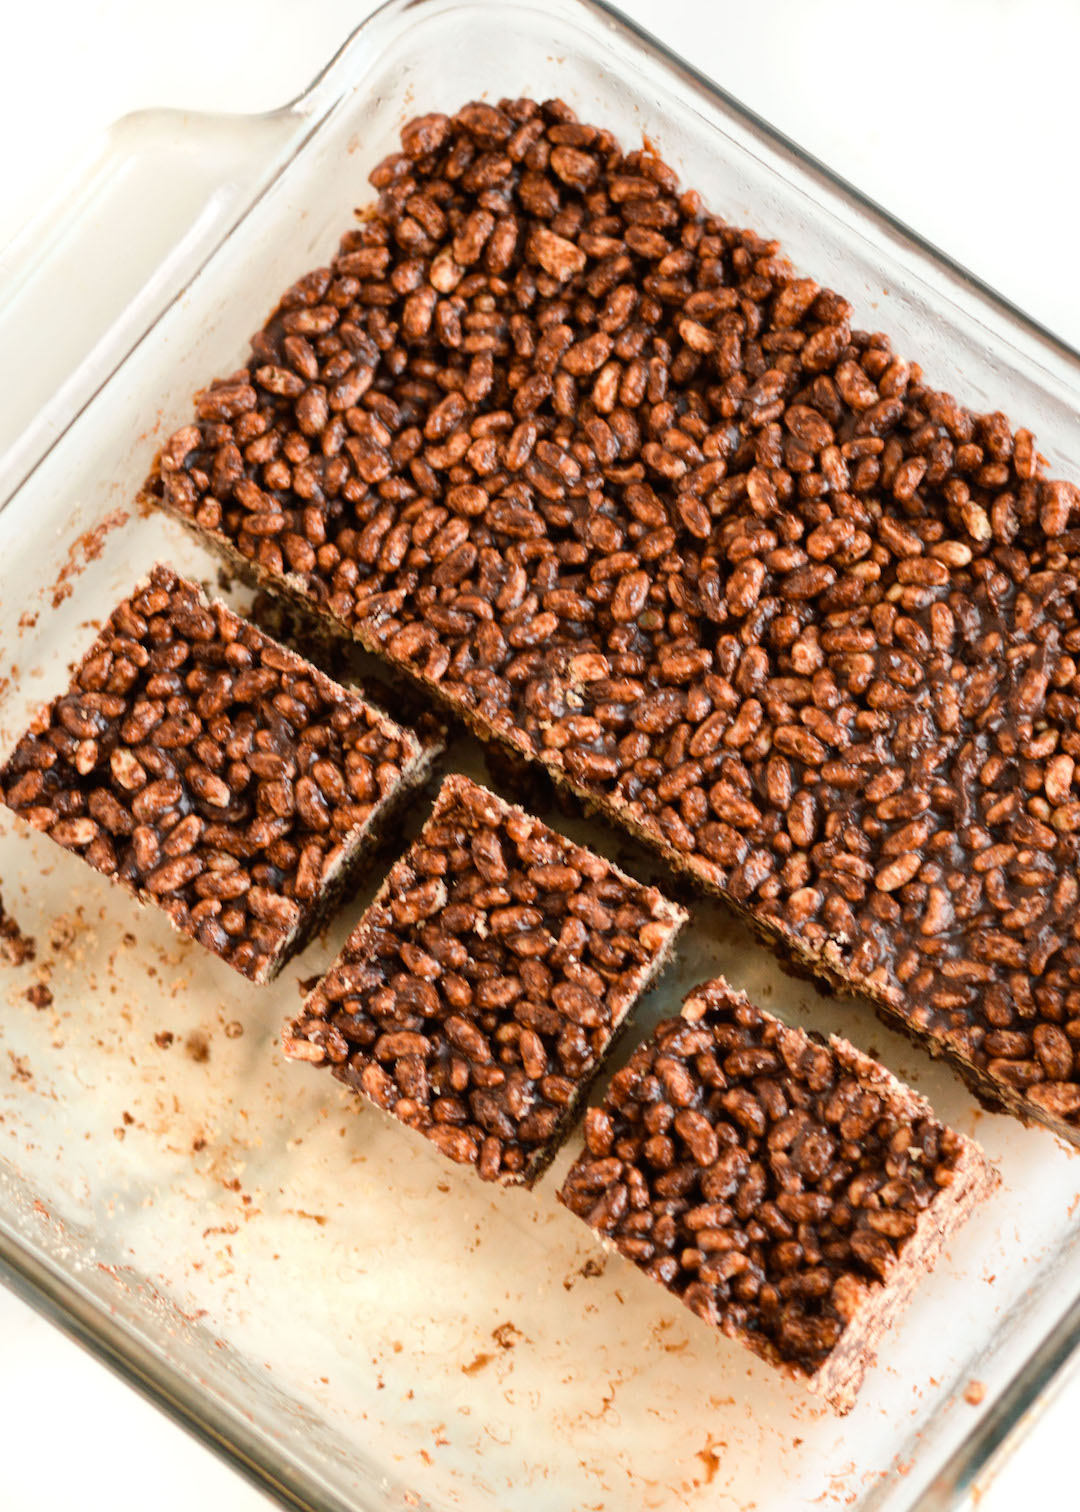 Peanut Butter Chocolate Crispy Squares | recipe | no-bake snack | gluten free, easy to make | peanut butter and dark chocolate combined with honey and crispy brown rice |the perfect sweet treat